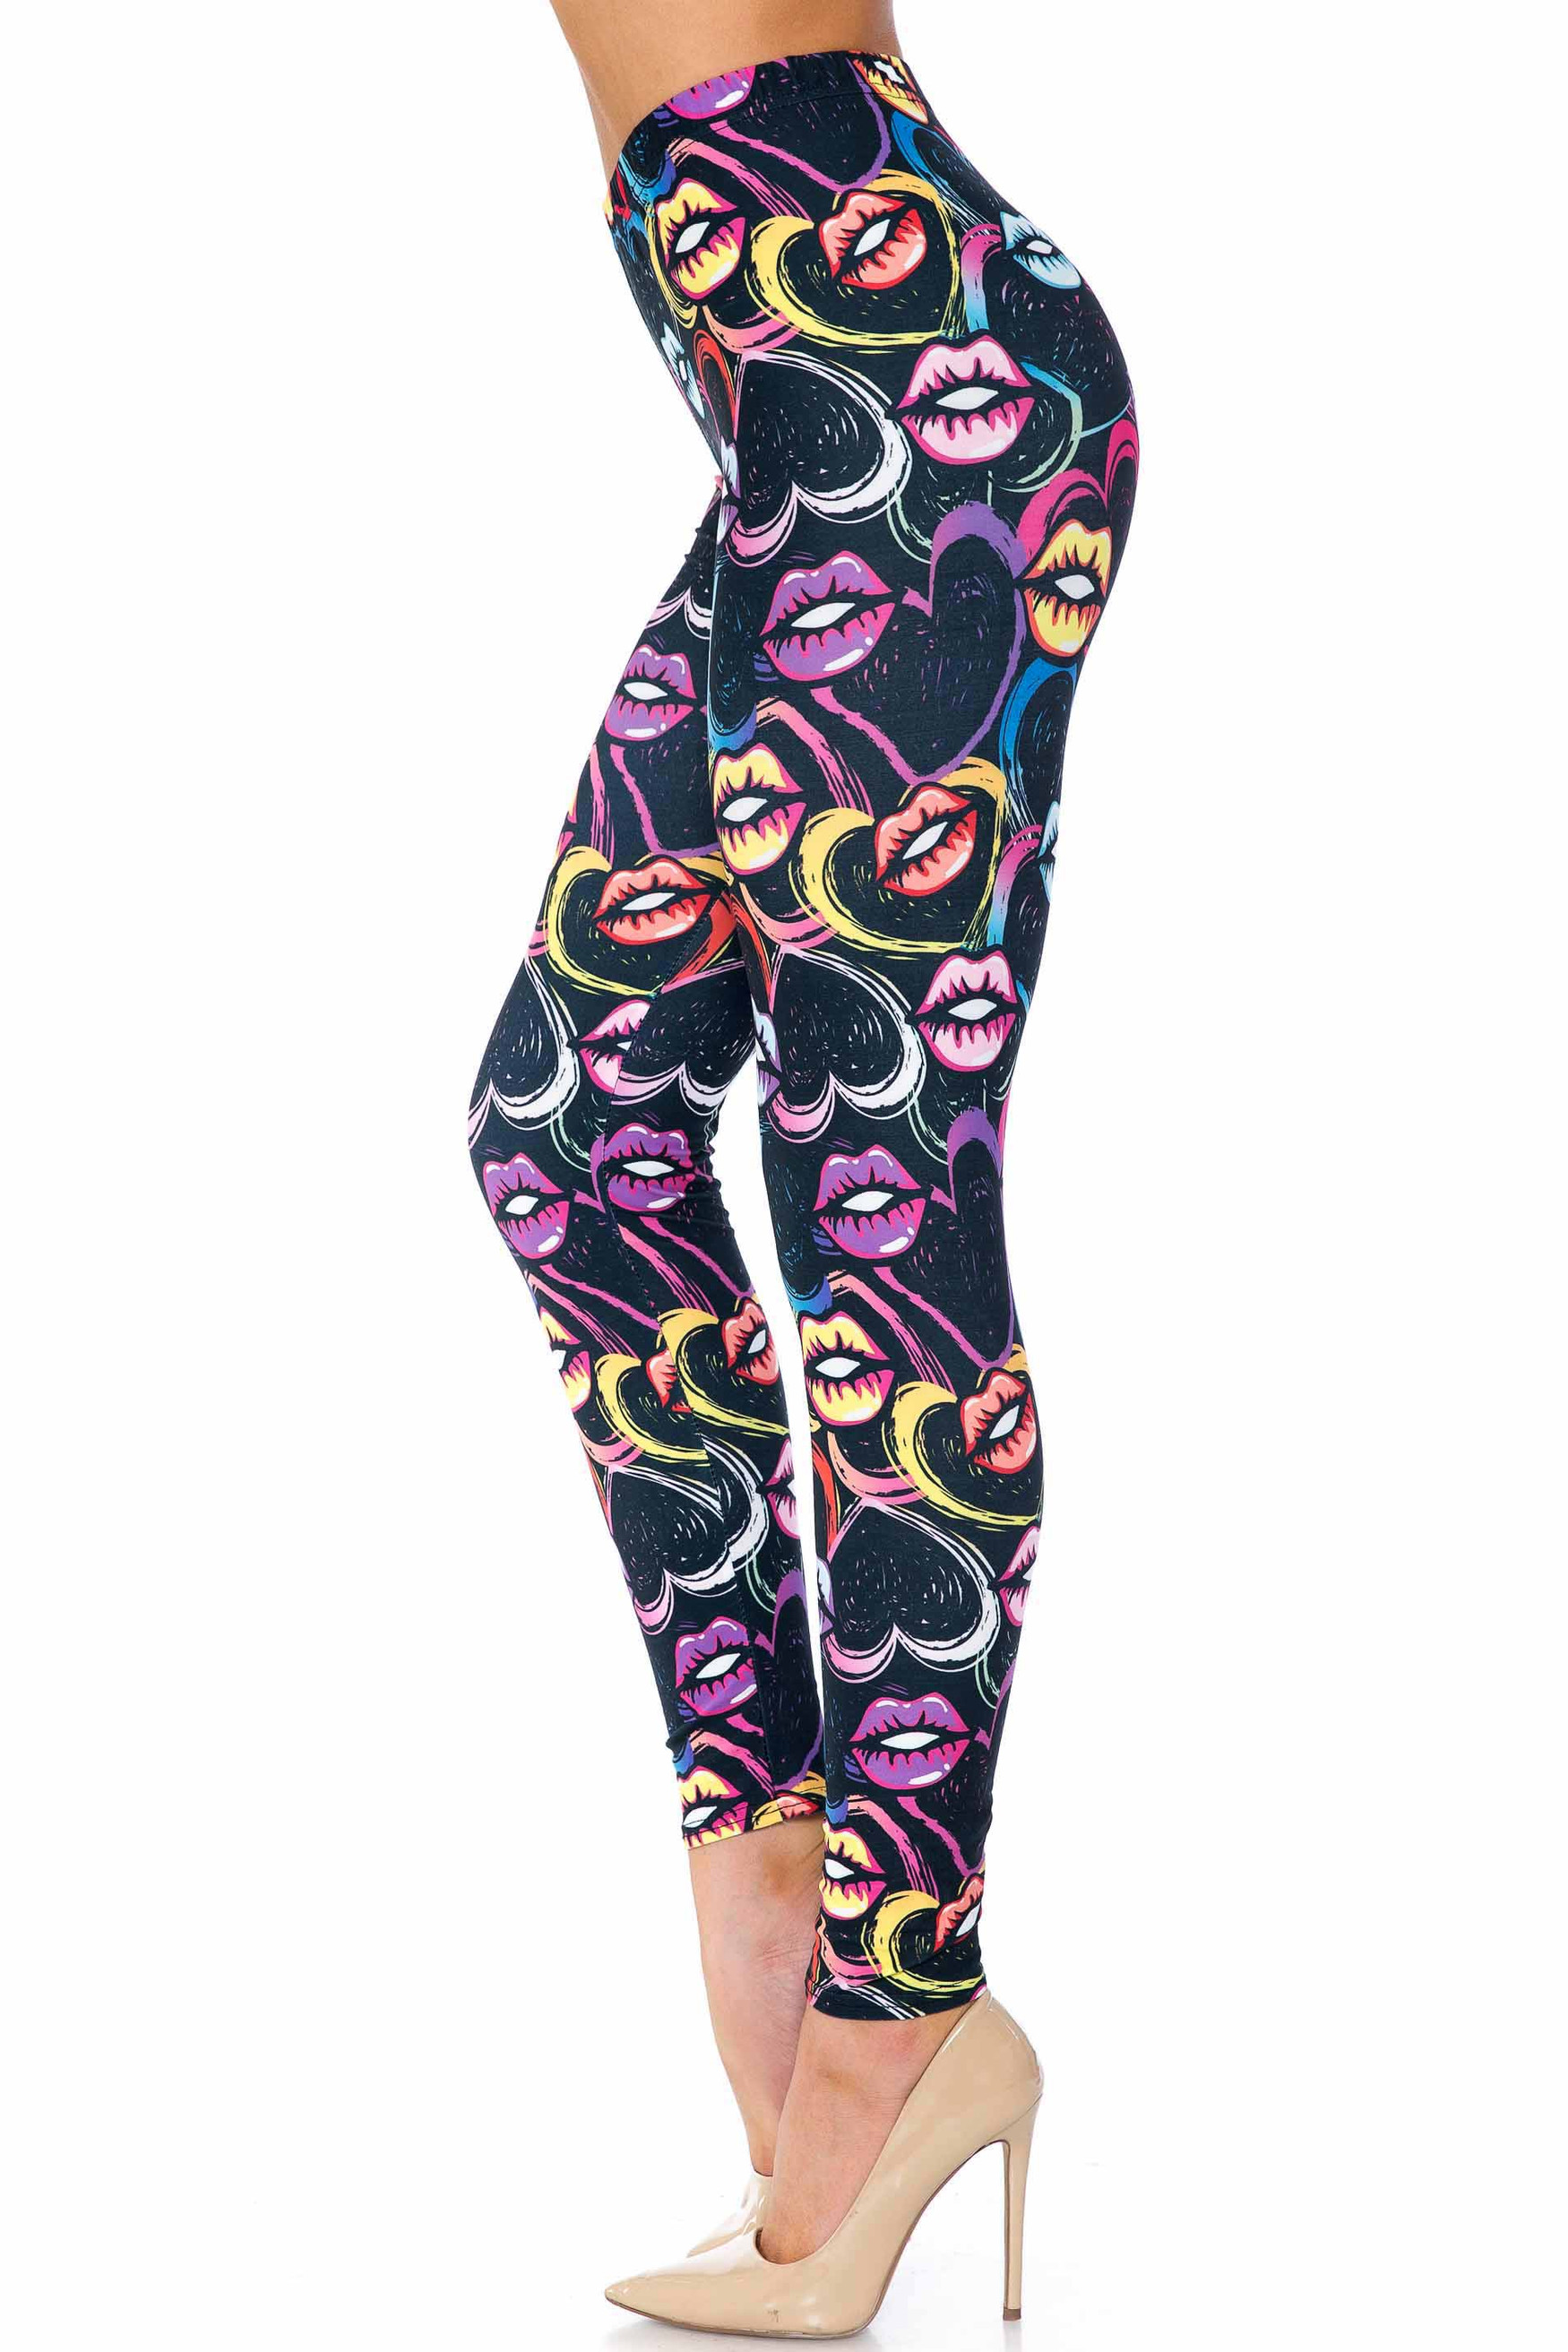 Colorful Lips and Hearts Extra Plus Size Leggings - 3X-5X - USA Fashion™